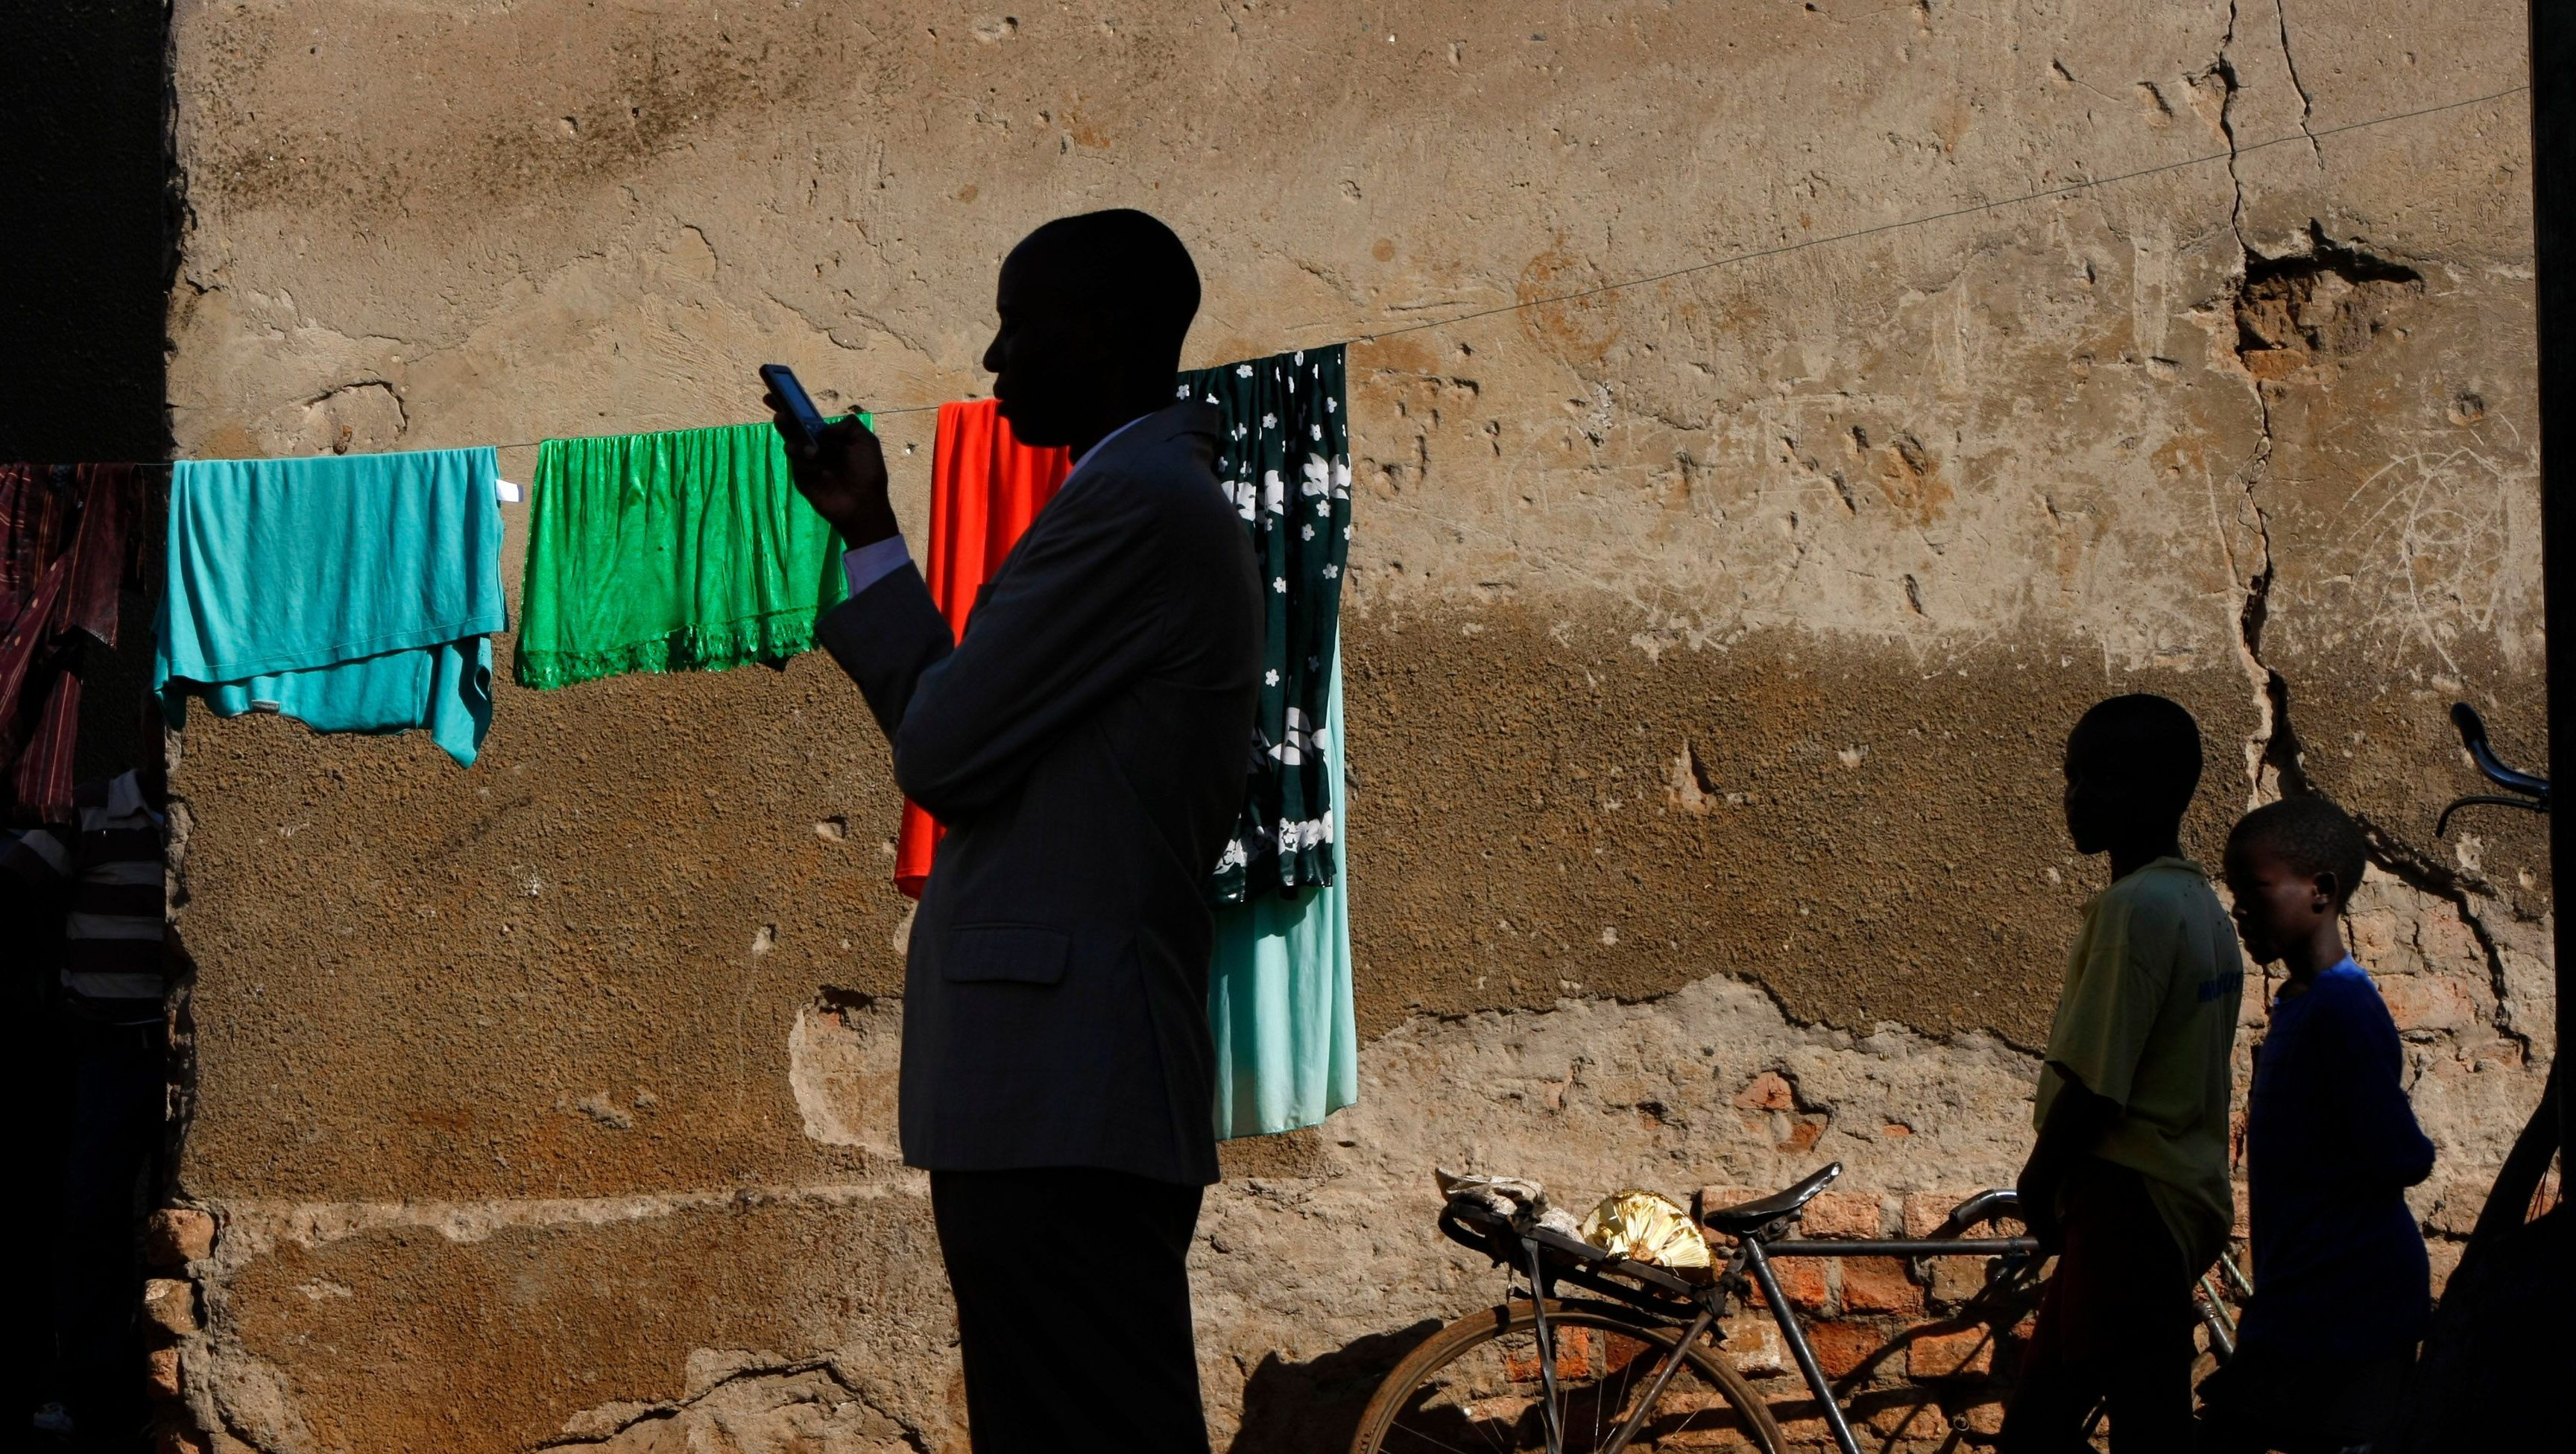 A town official accompanying visiting journalists sends a text message on his phone in the slum of Kachuf in the Masaka district of southern Uganda March 24, 2009.  The word 'Kachuf' in Luganda means 'dirt'.